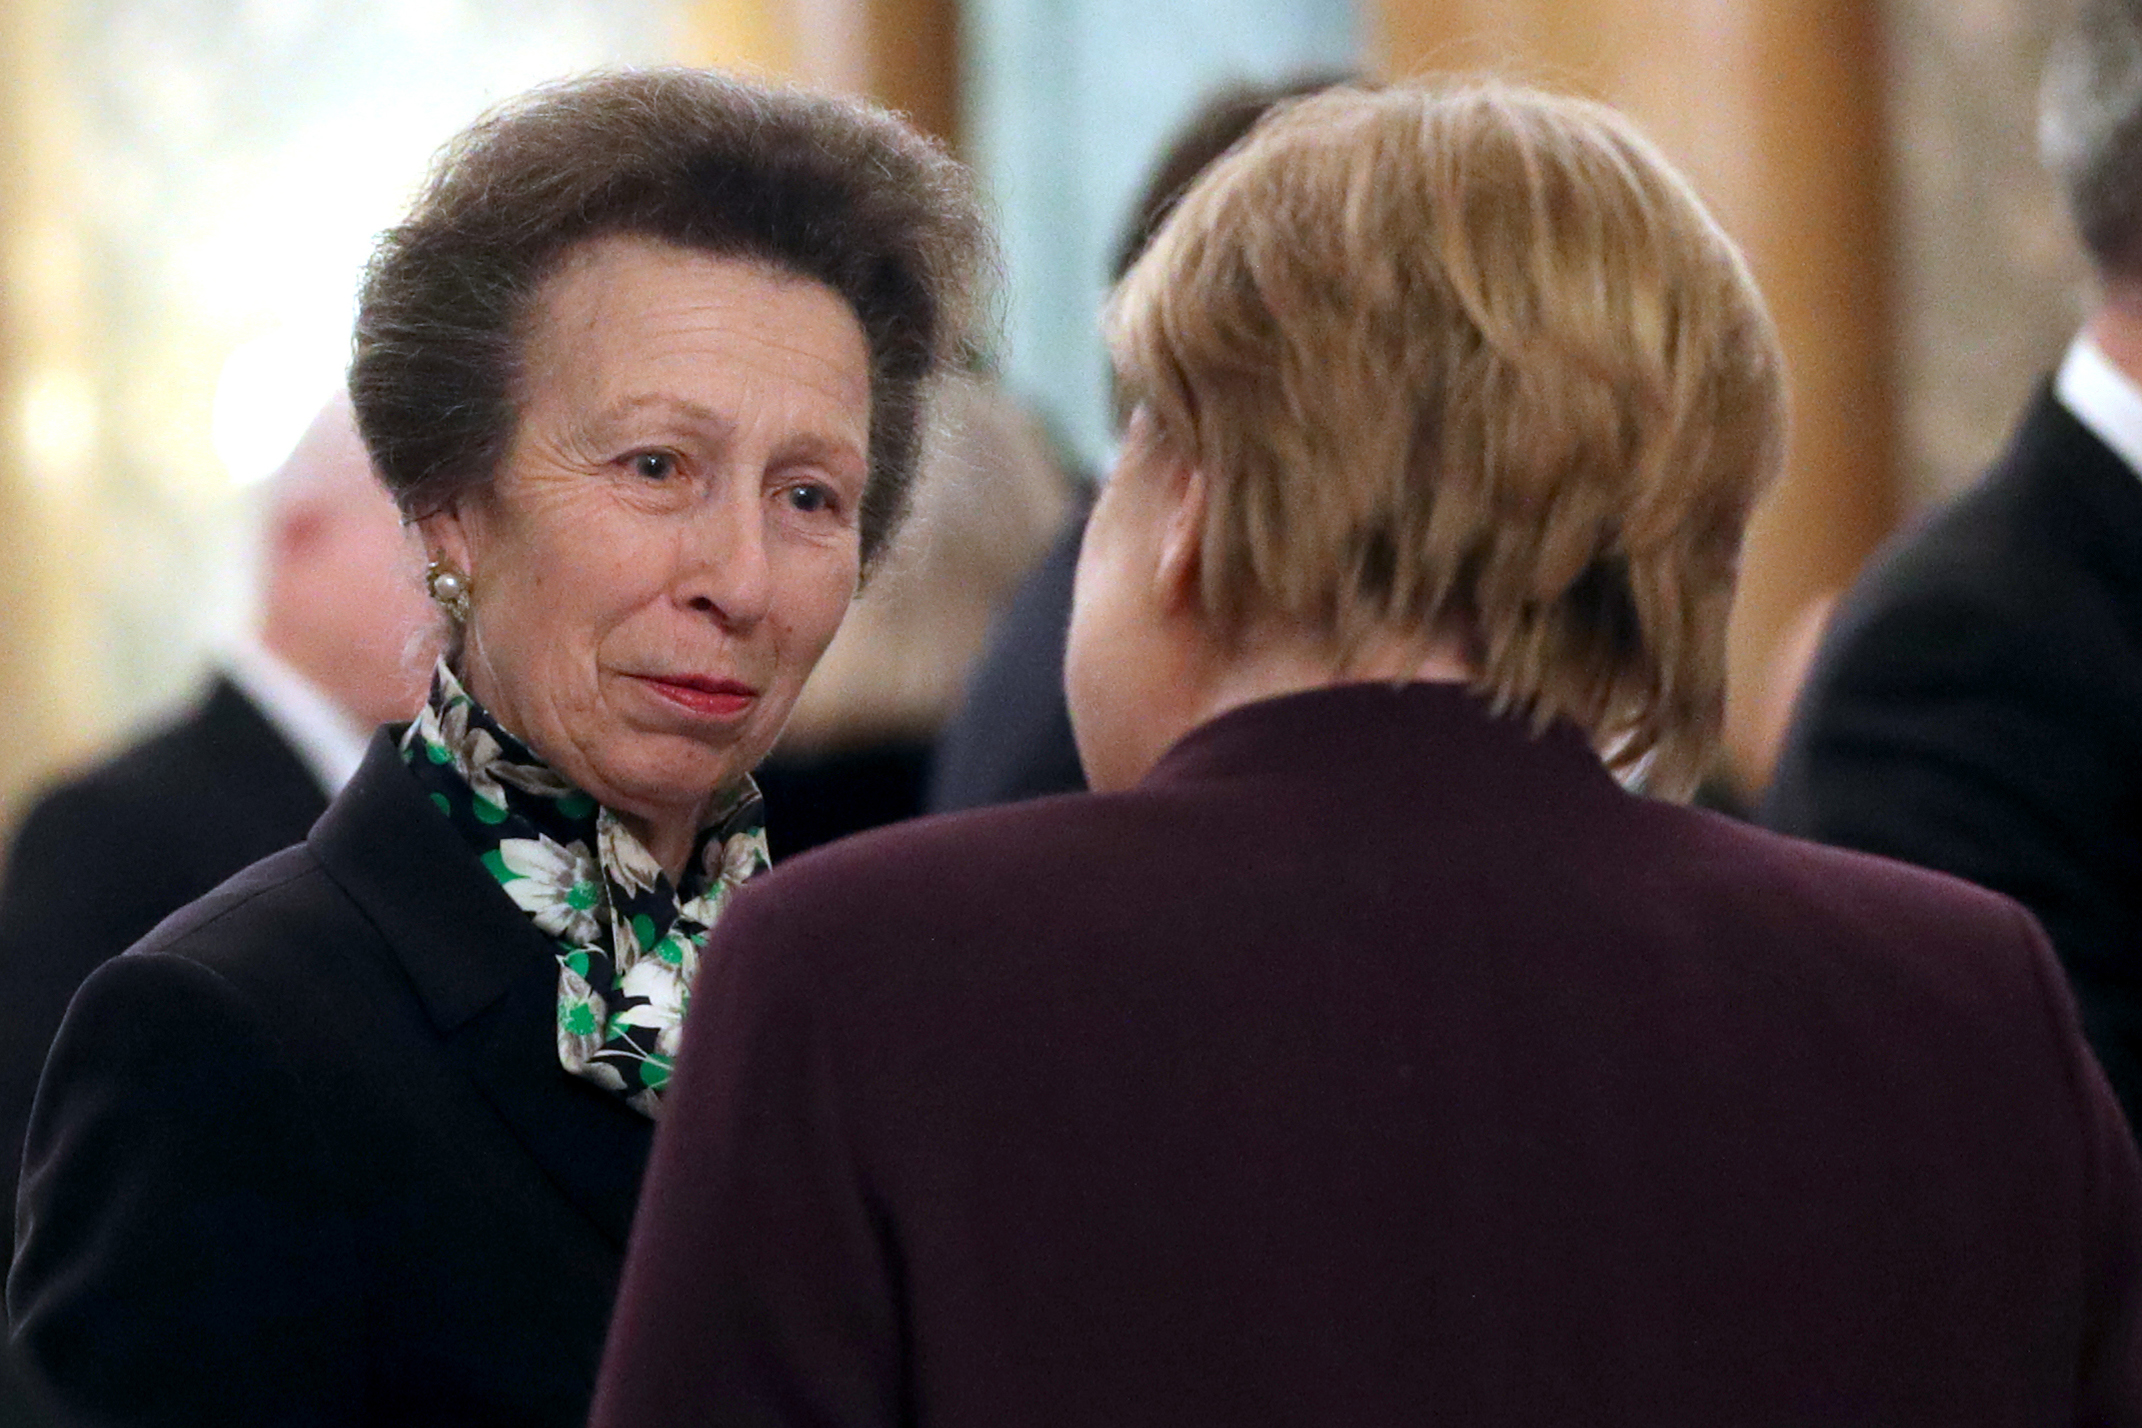 Princess Anne speaks with German Chancellor Merkel at Buckingham Palace on Tuesday evening. Photo: Yui Mok/AFP via Getty Images